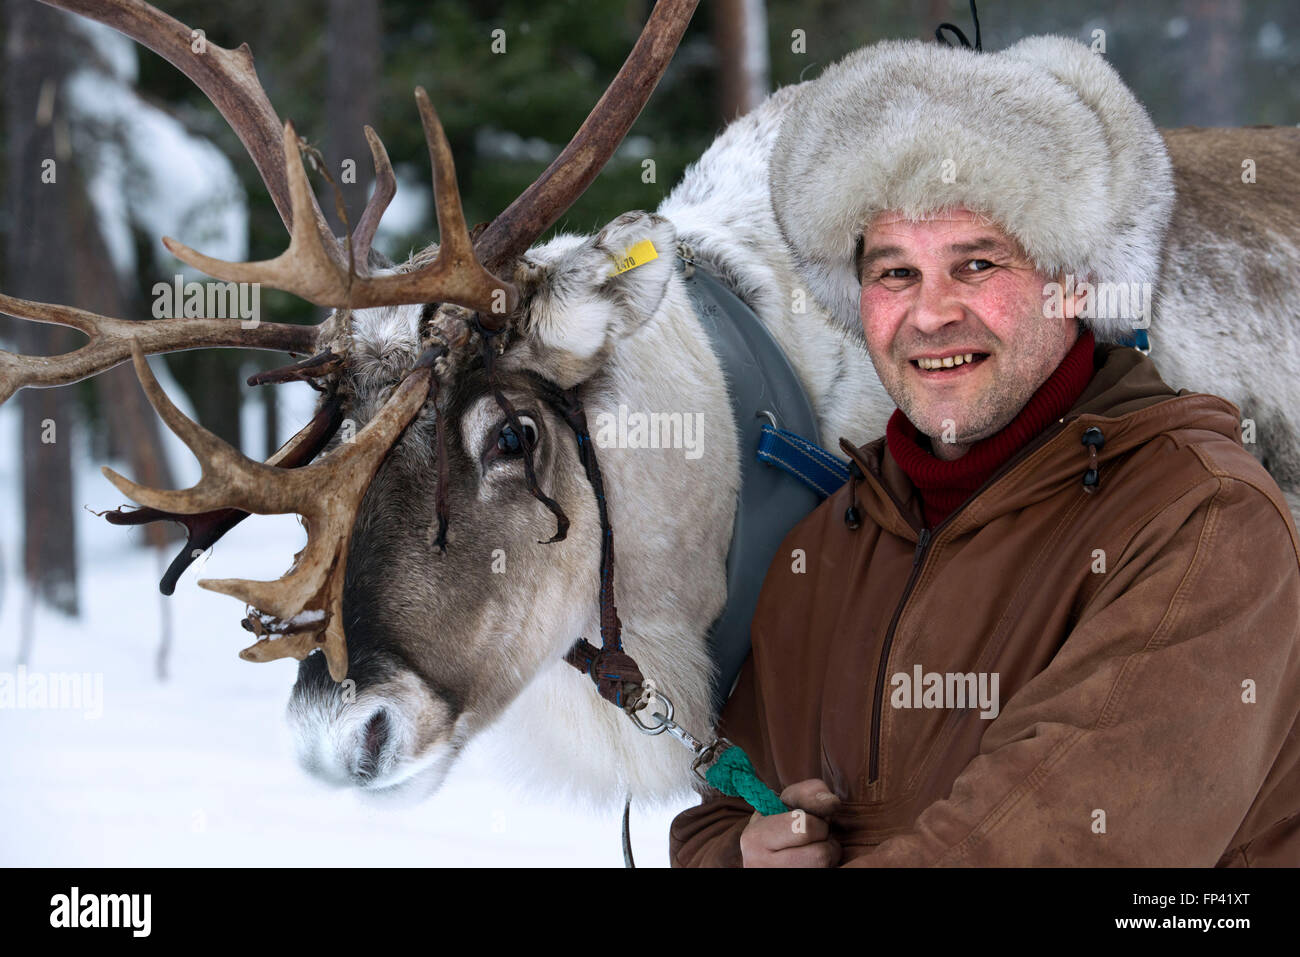 Portrait of a shepherd with his reindeer. Reindeer farm in Salla, Lapland Finland. The reindeer is an icon of Finnish - Stock Image